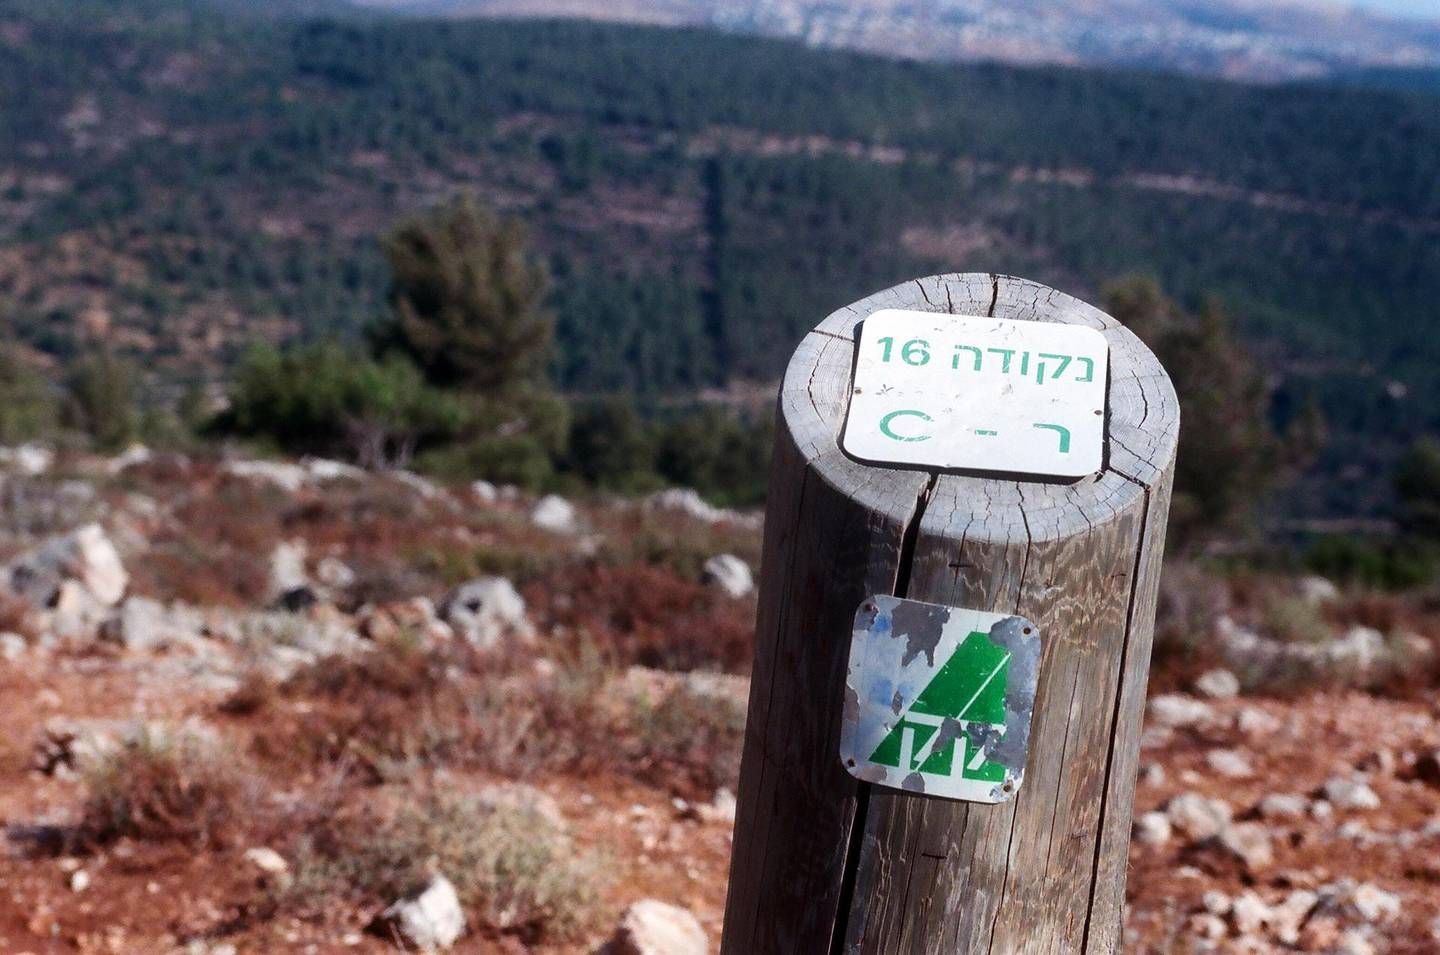 A post marking the land that was al louz village until 1948 as now run by the Jewish National Fund.